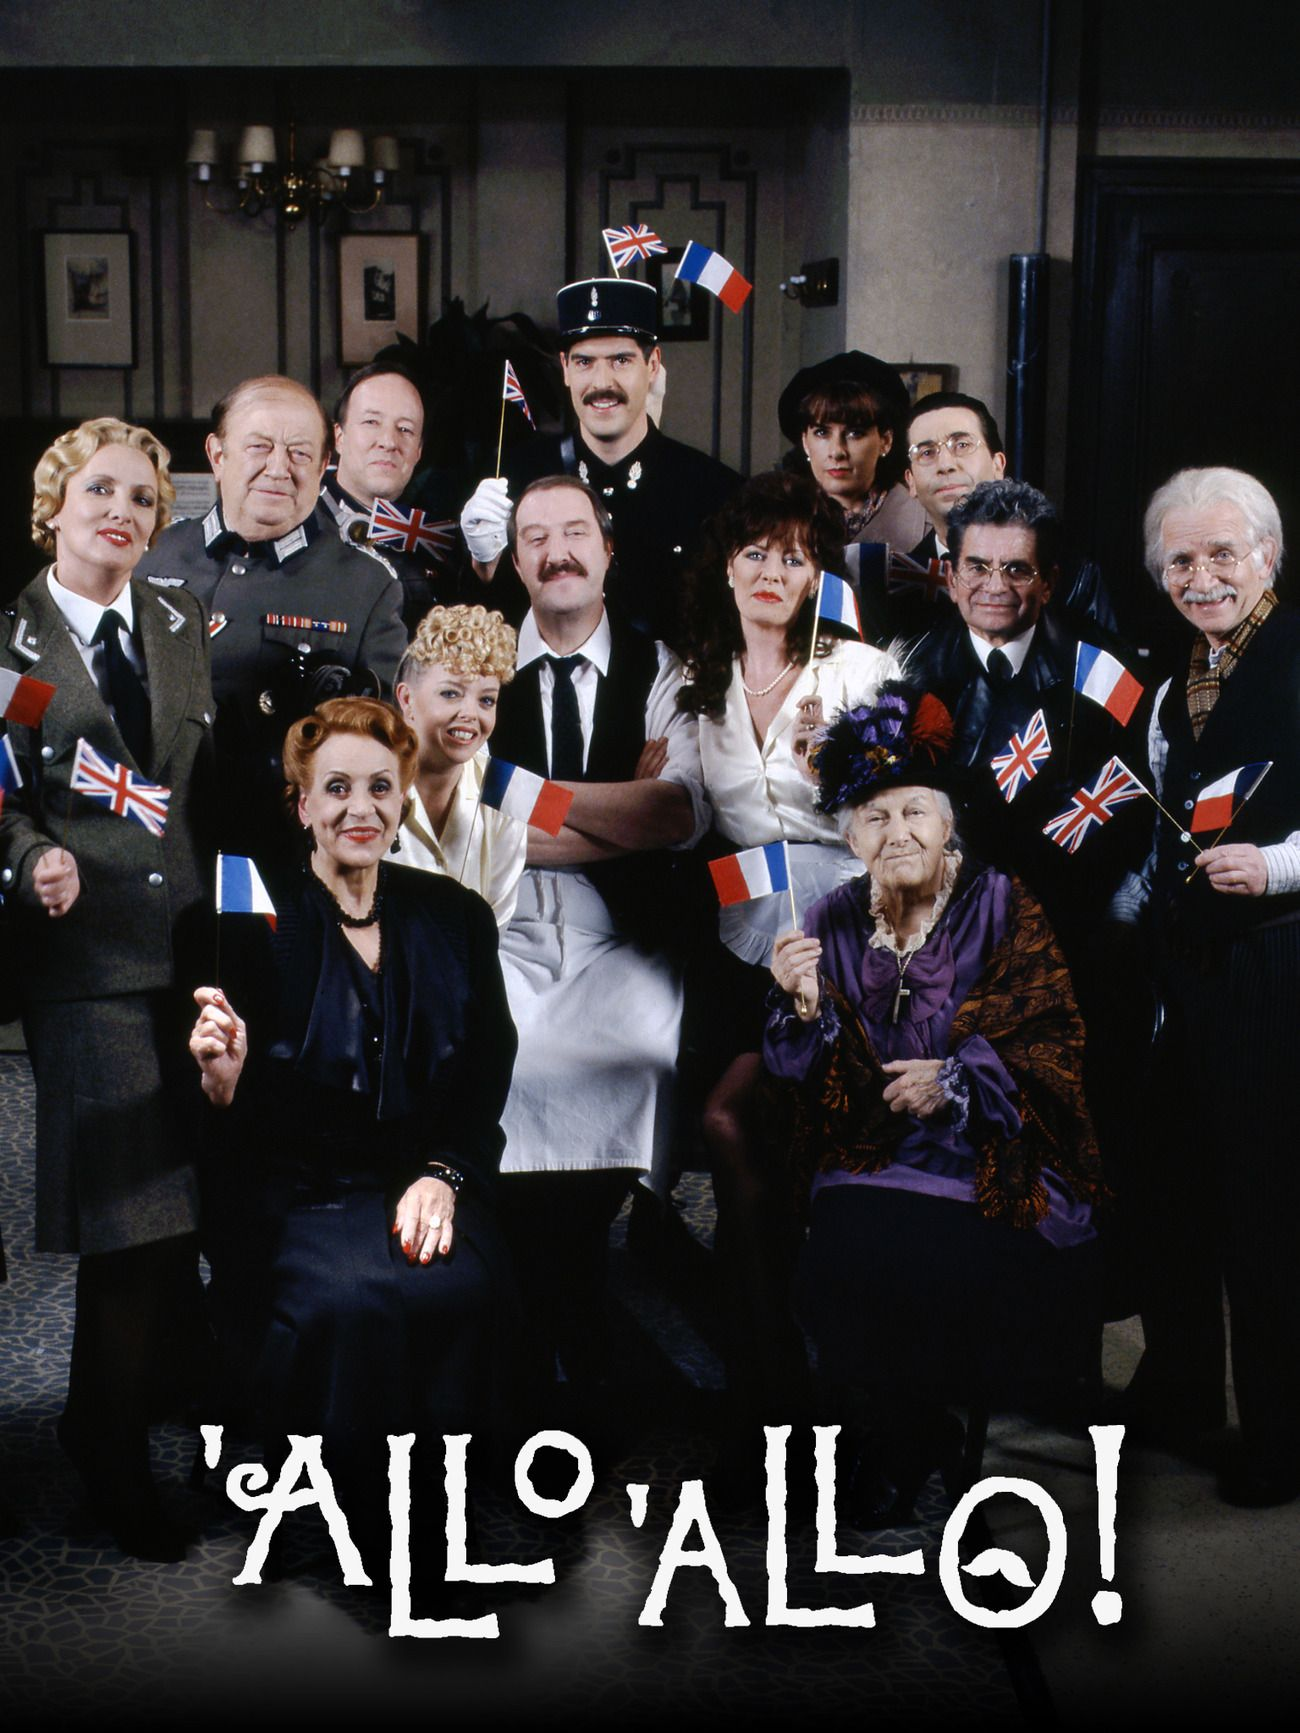 Allo 'Allo! (TV Series) (1982) Country: United Kingdom - My parents love this, and since we then only had one TV, that was what you watched